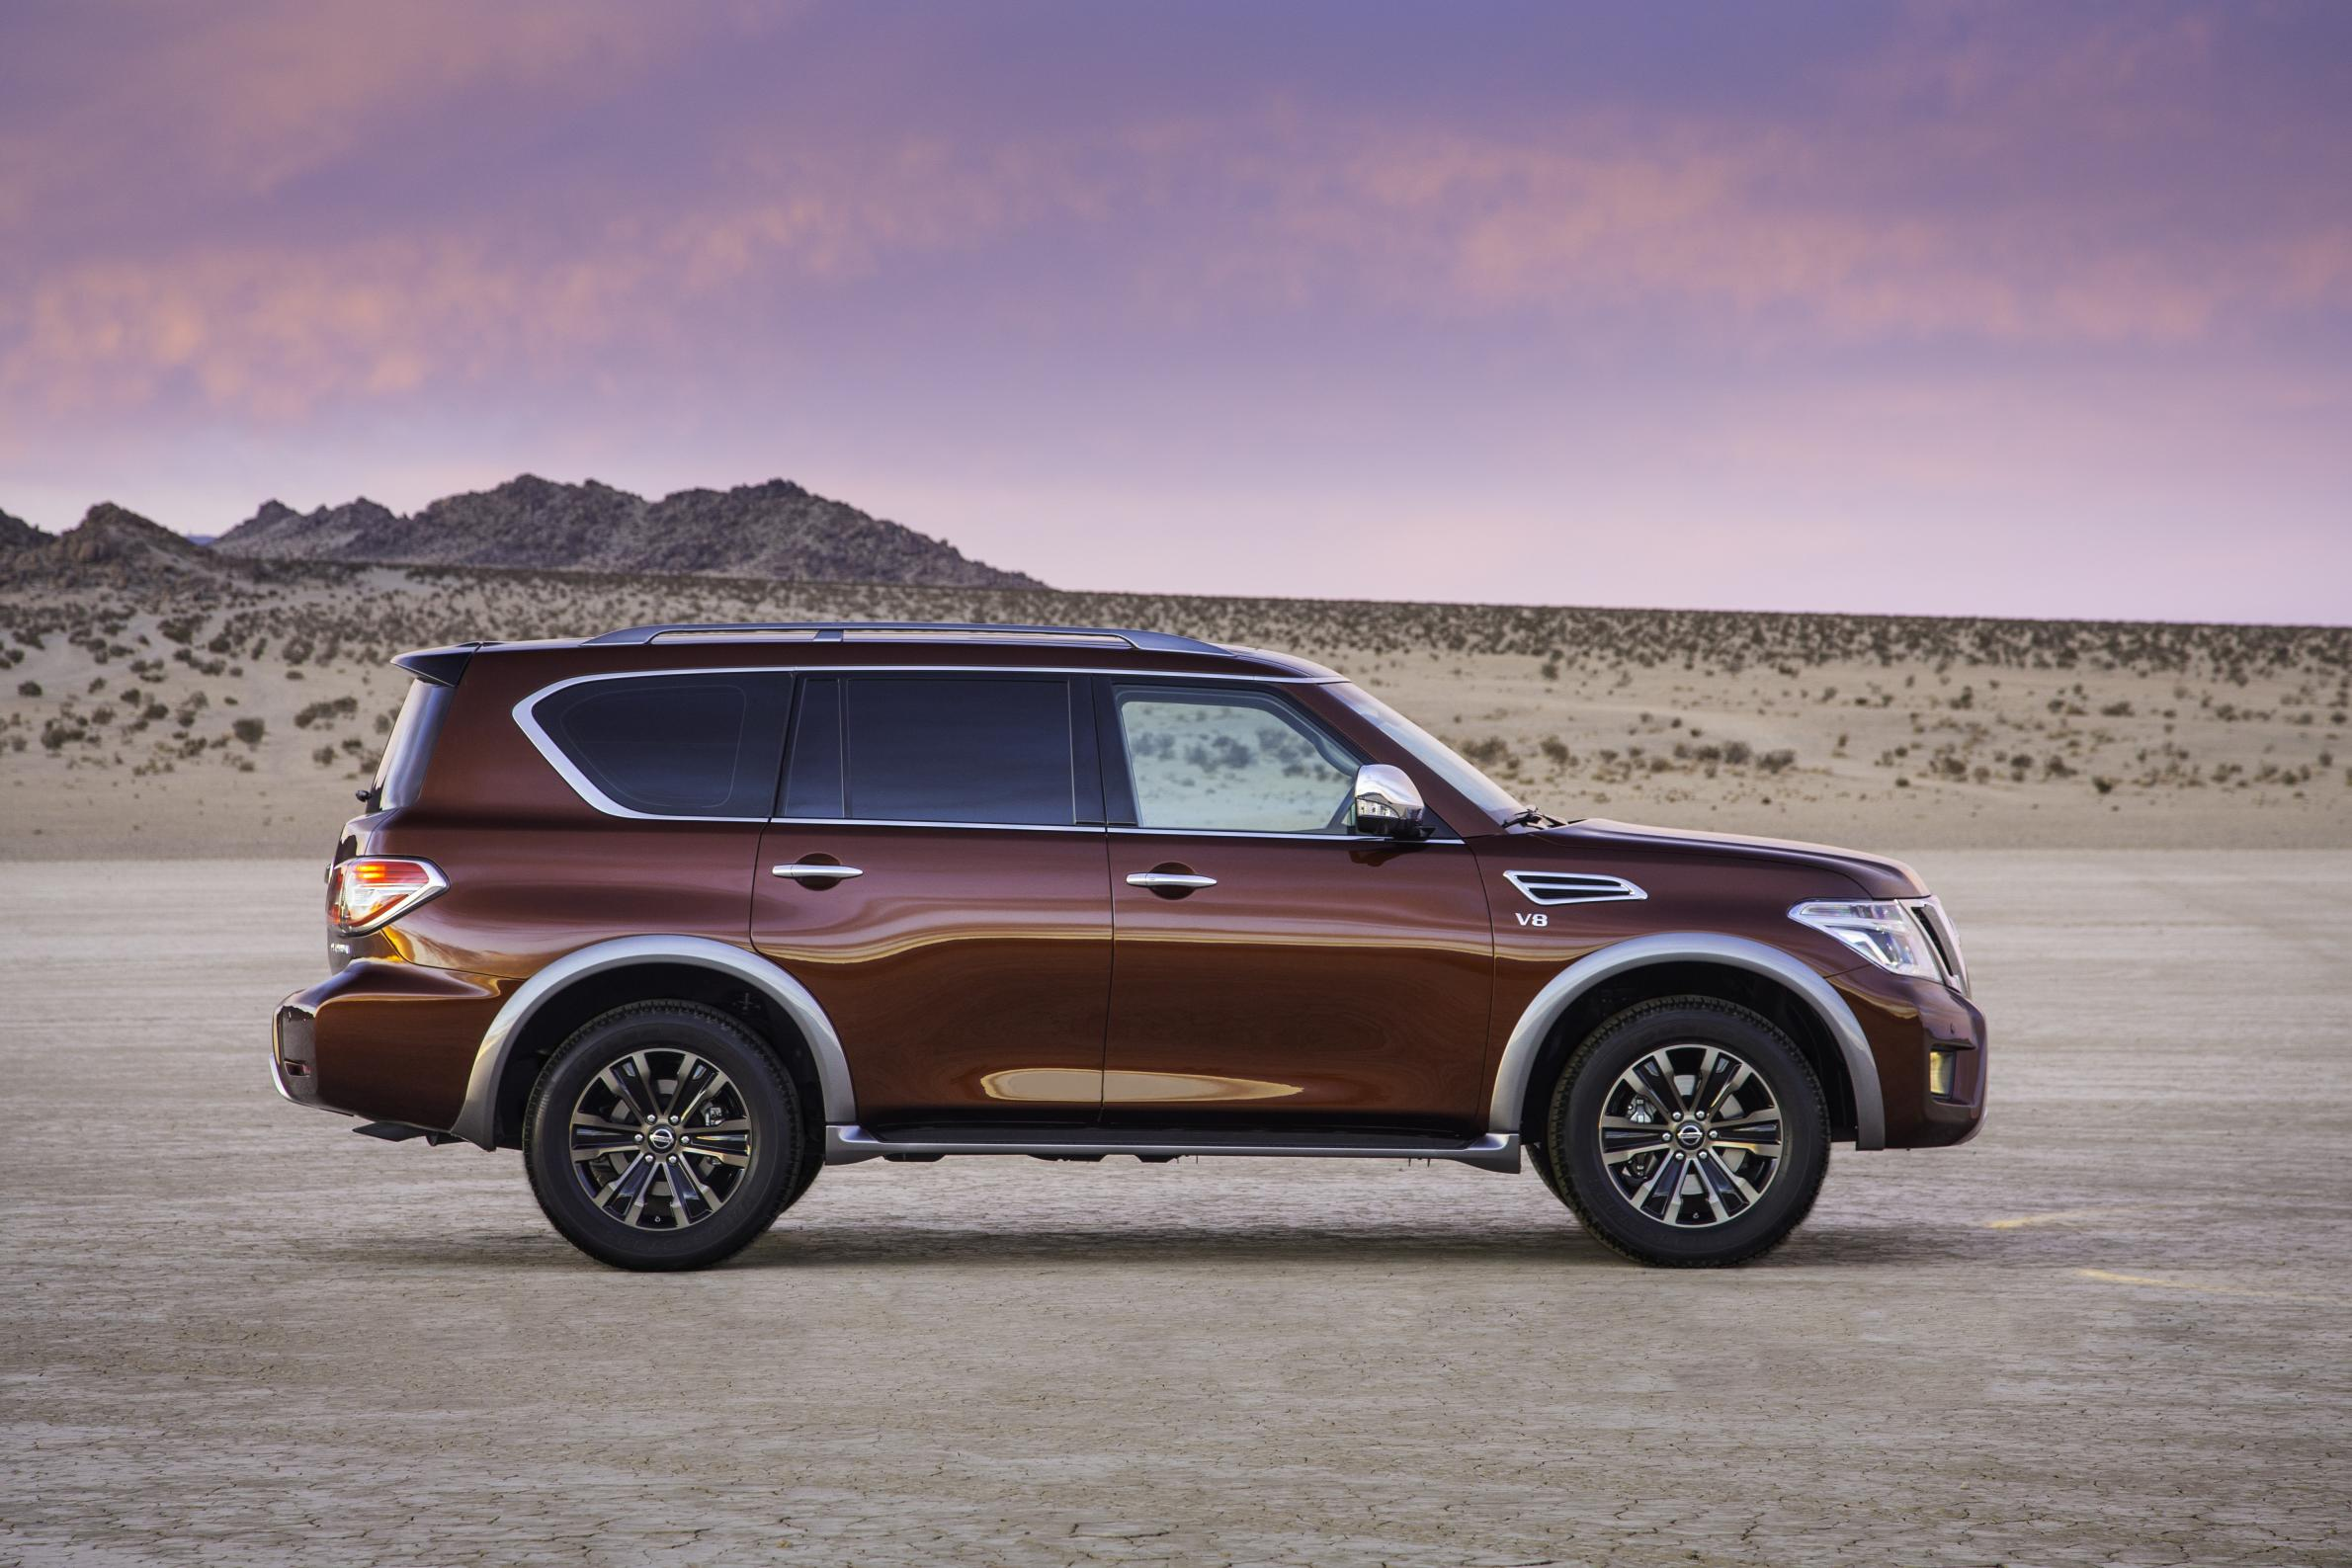 Fastest Car In The World 2017 >> 2017 Nissan Armada Is in Fact a Nissan Patrol Y62 - autoevolution